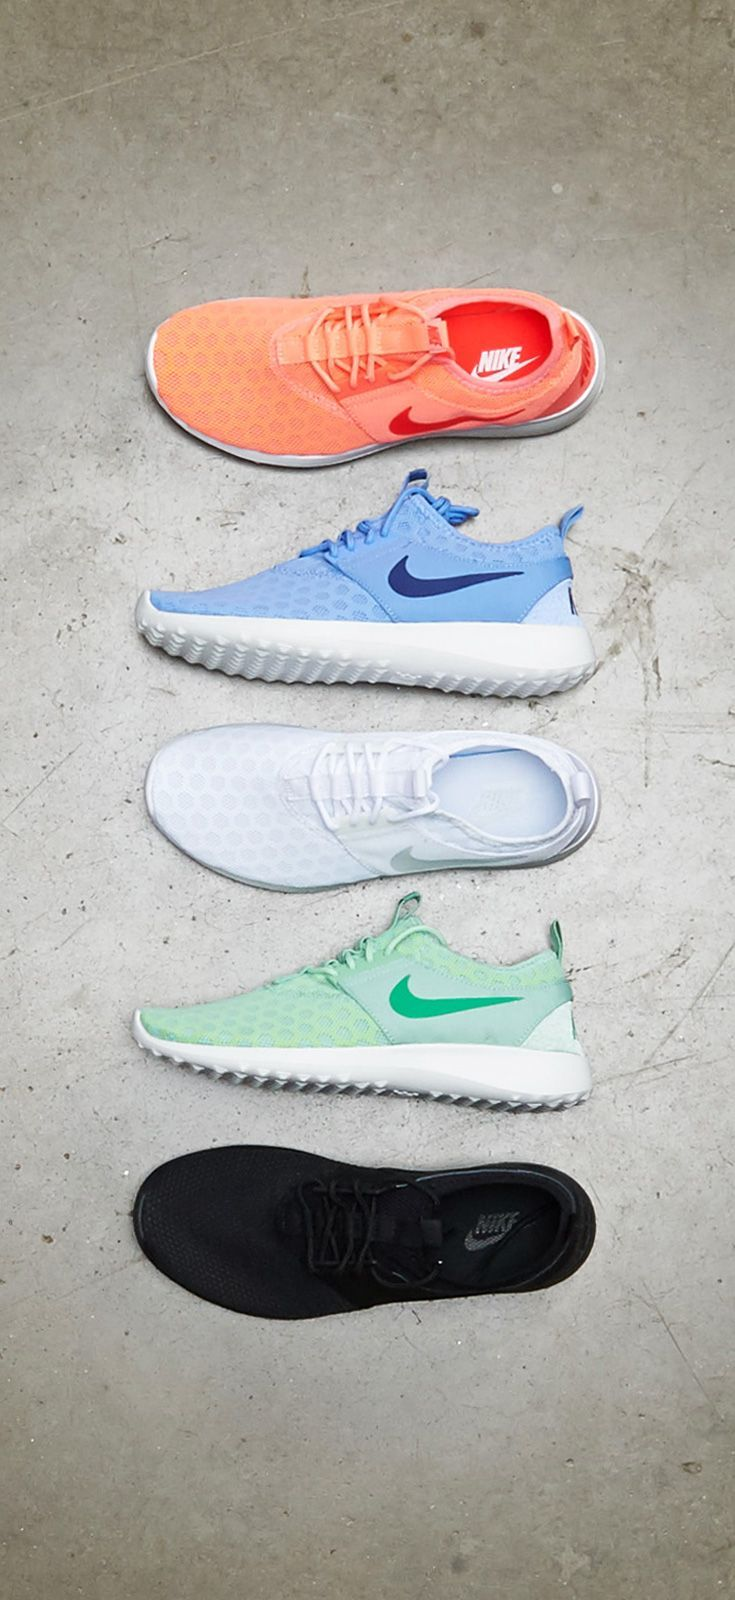 nikes run colorful nike basketball shoes